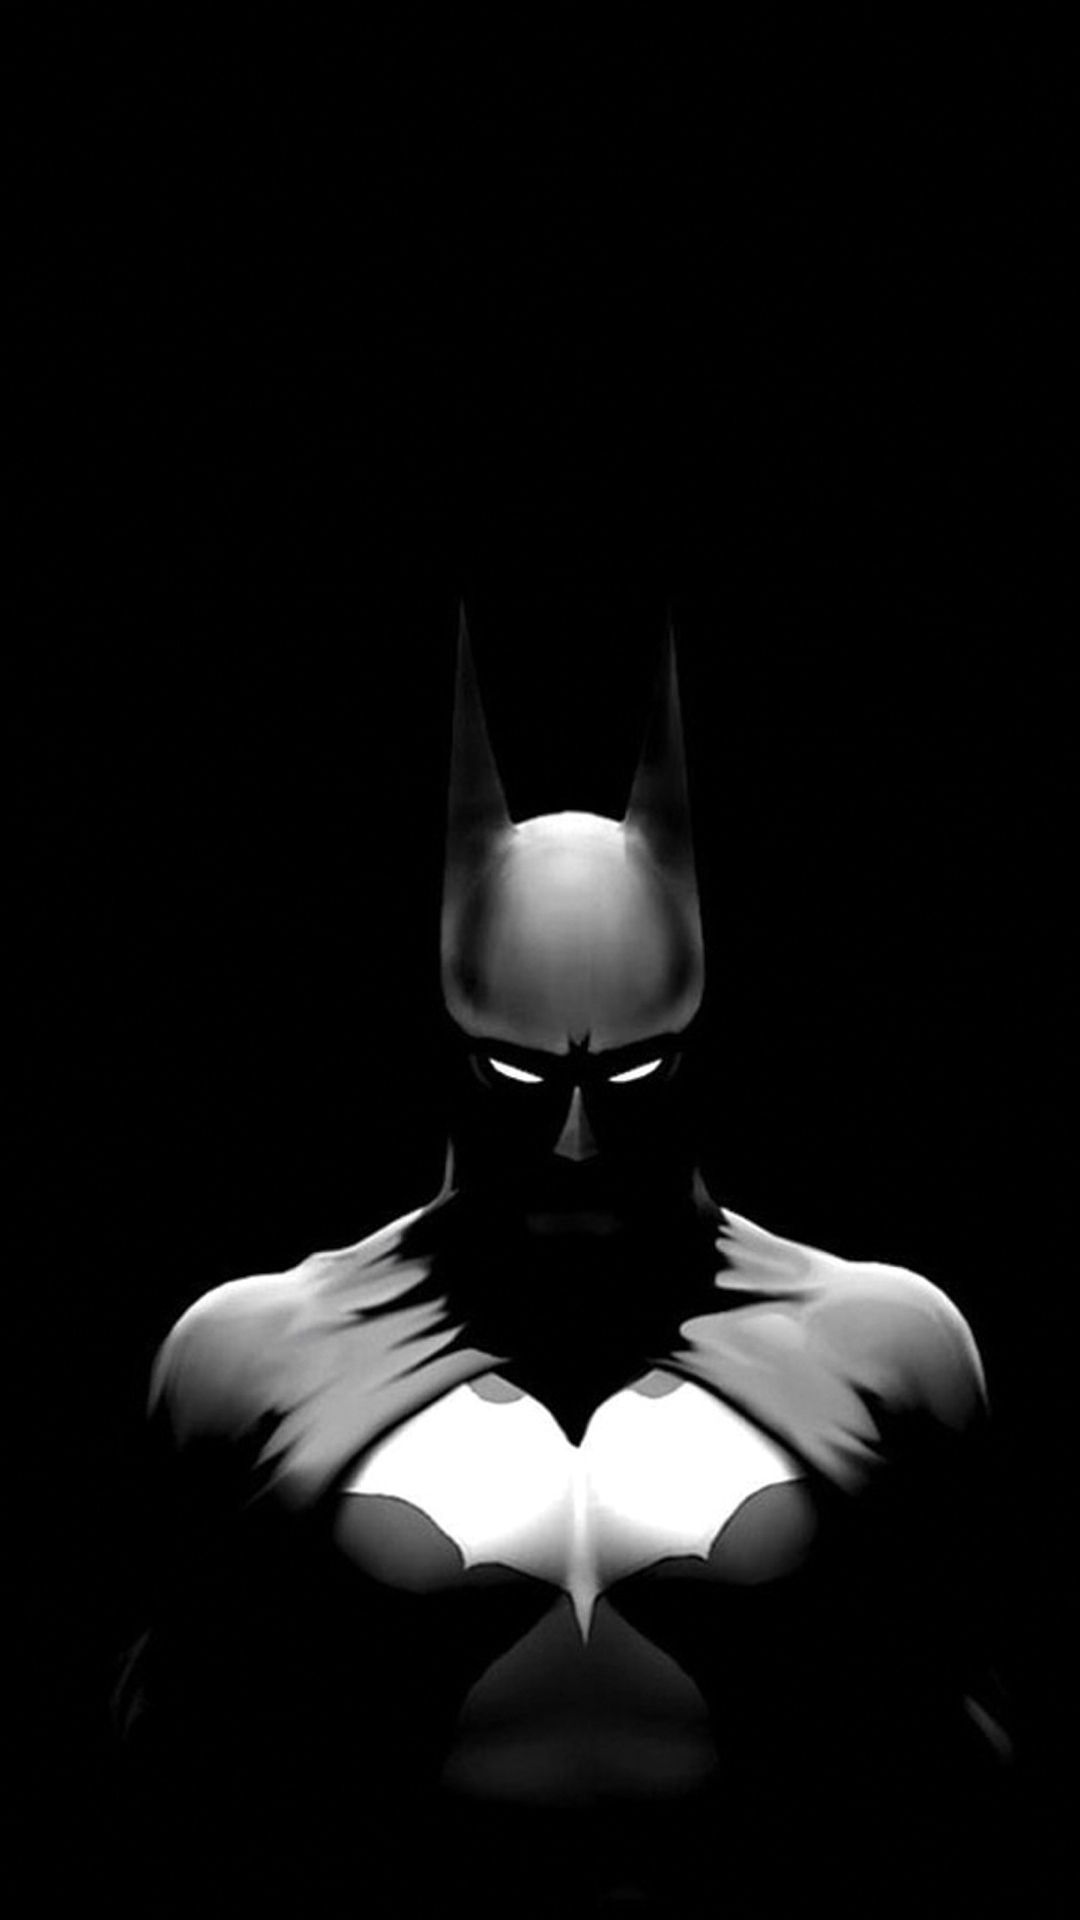 hd wallpapers of batman for mobile